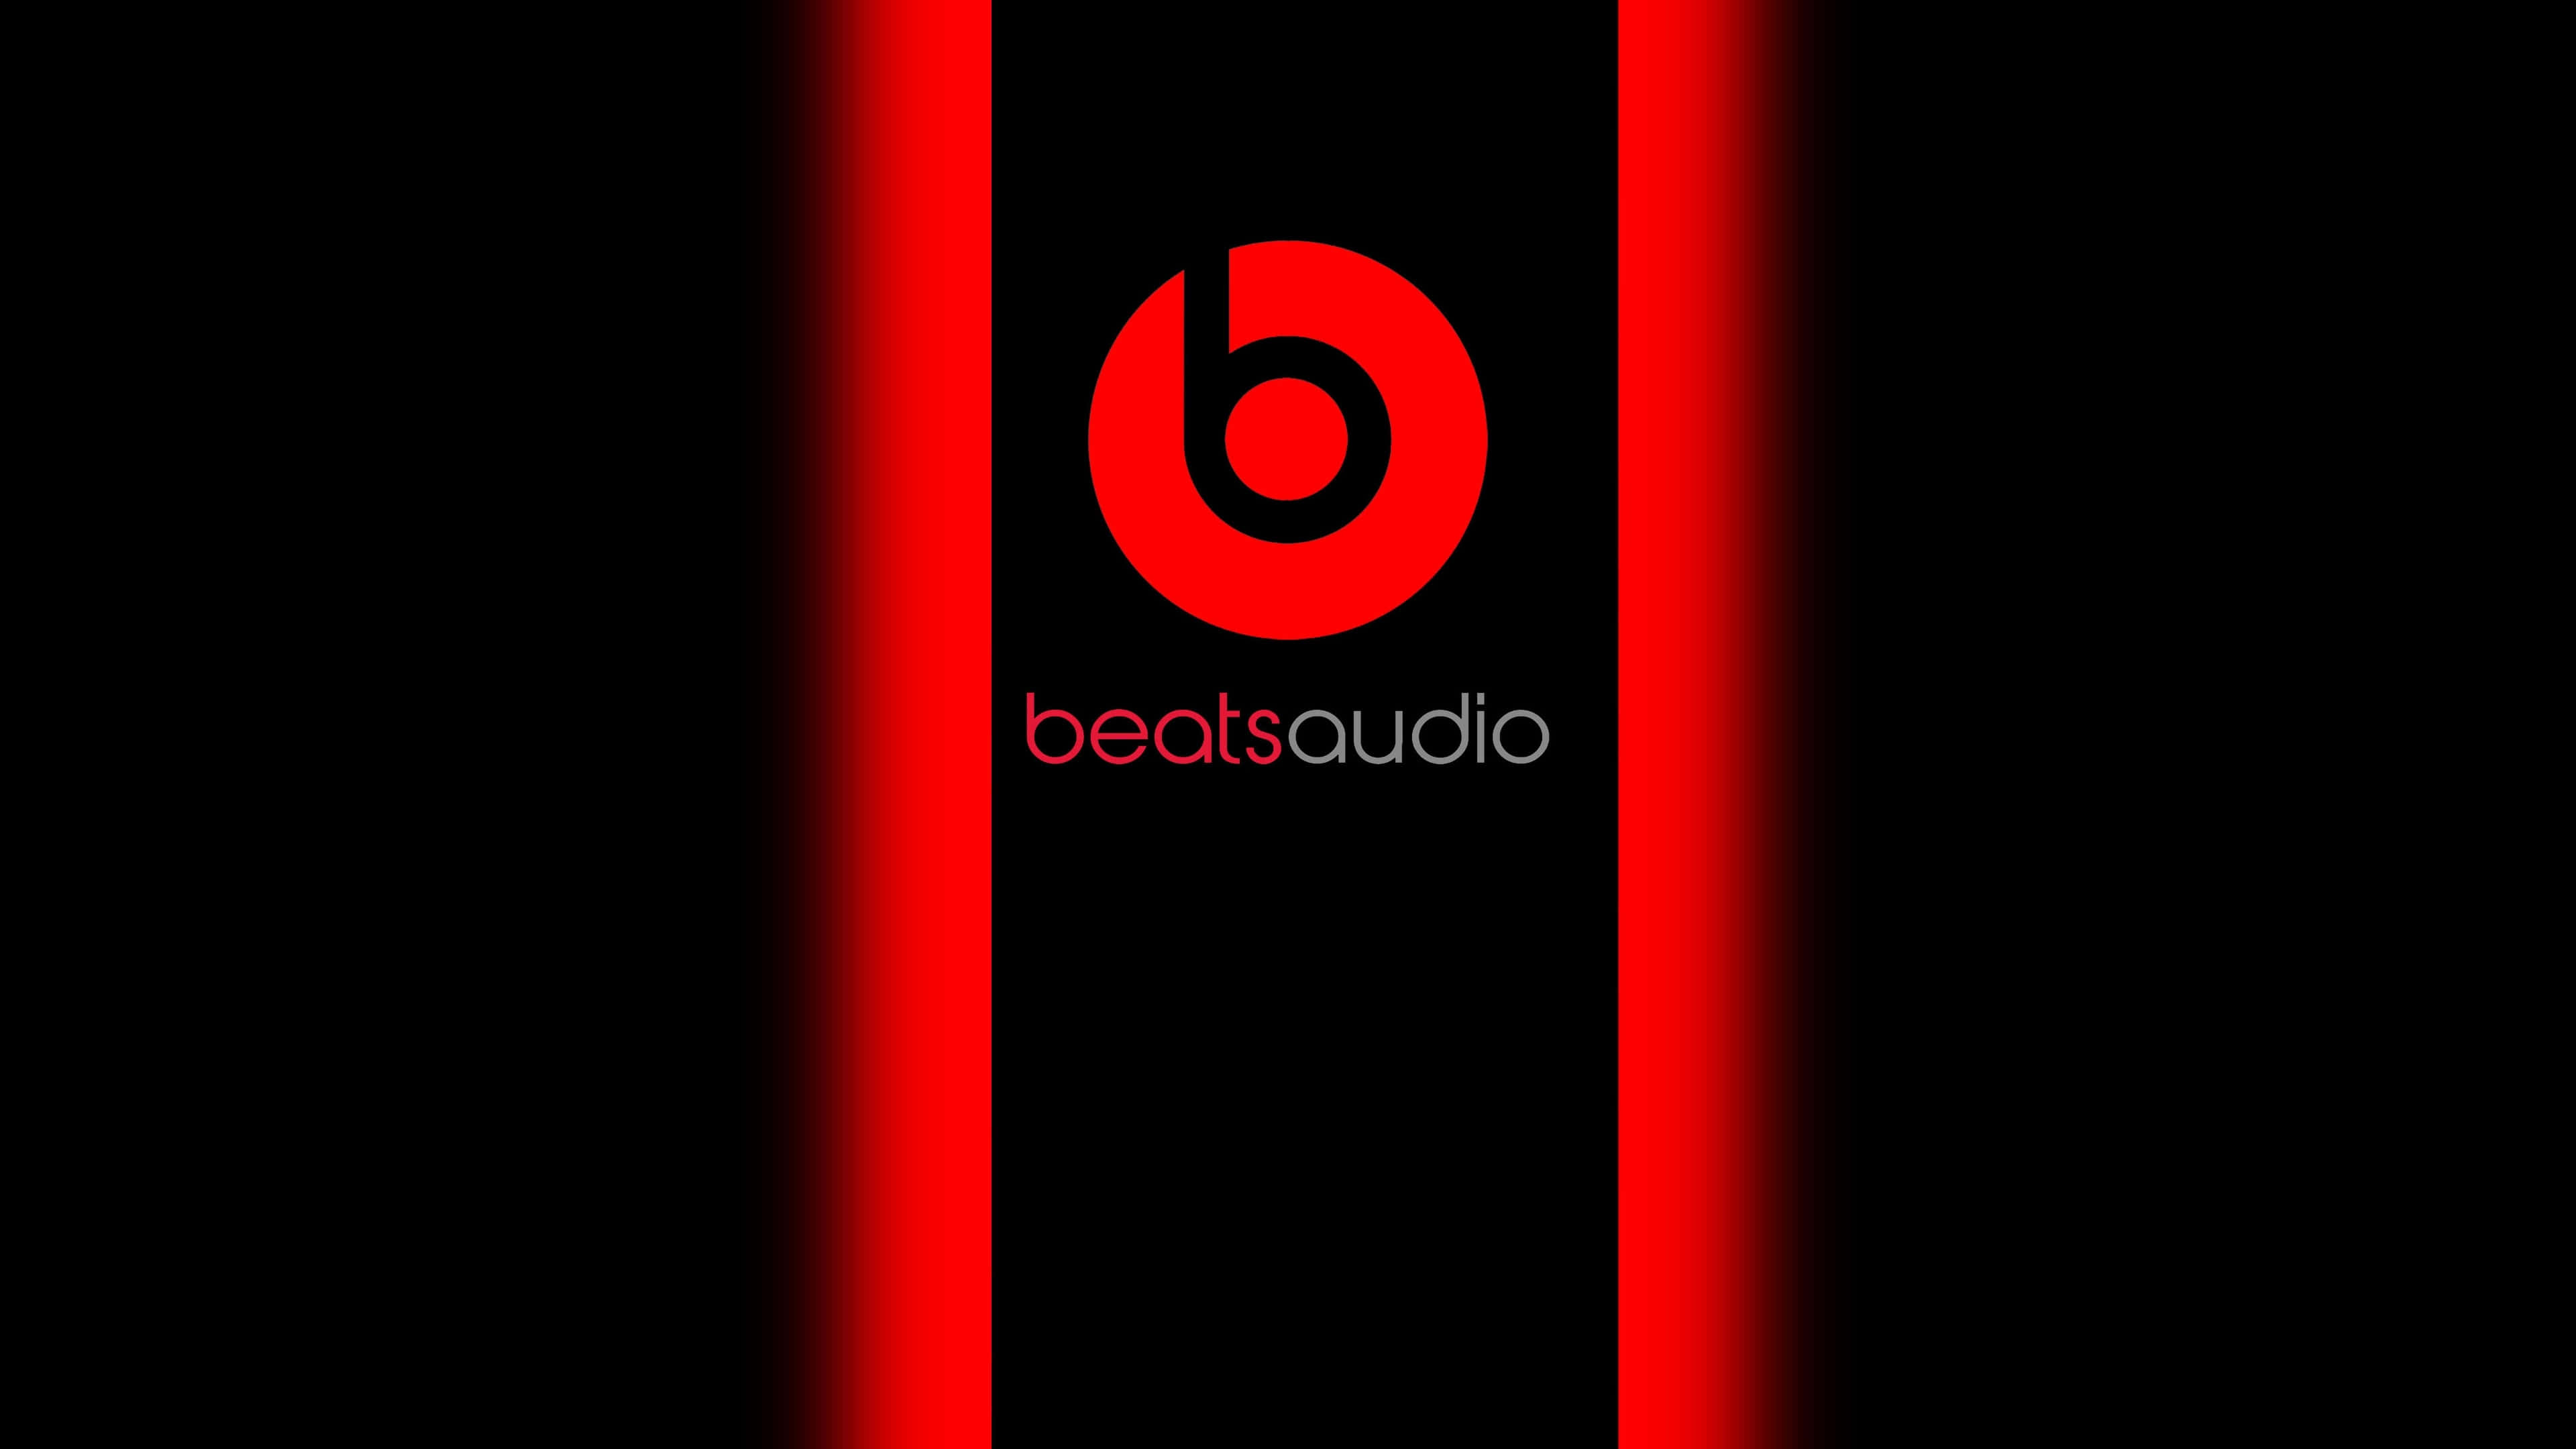 beats audio logo uhd 4k wallpaper